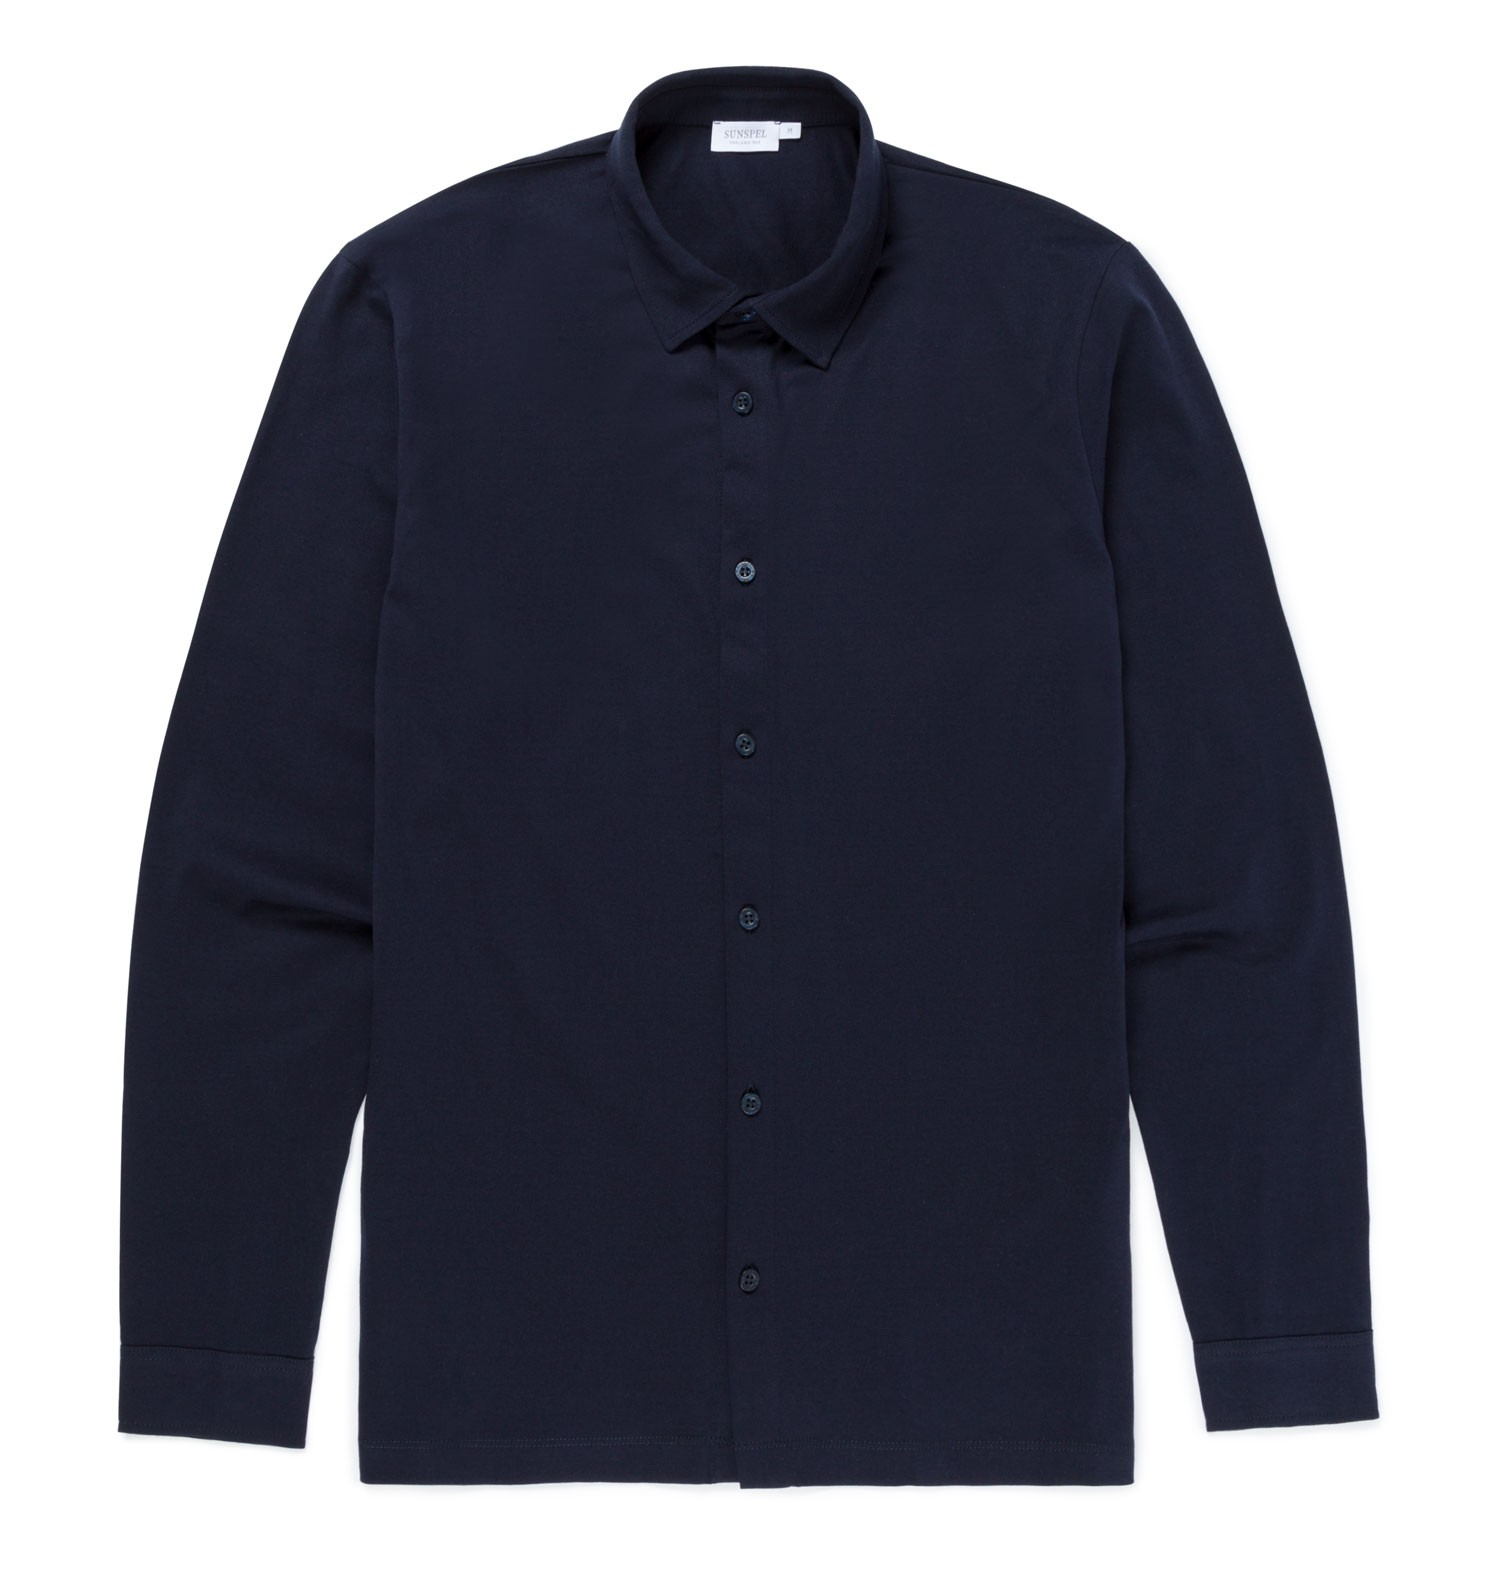 Sunspel Navy Men's Cotton Jersey Shirt